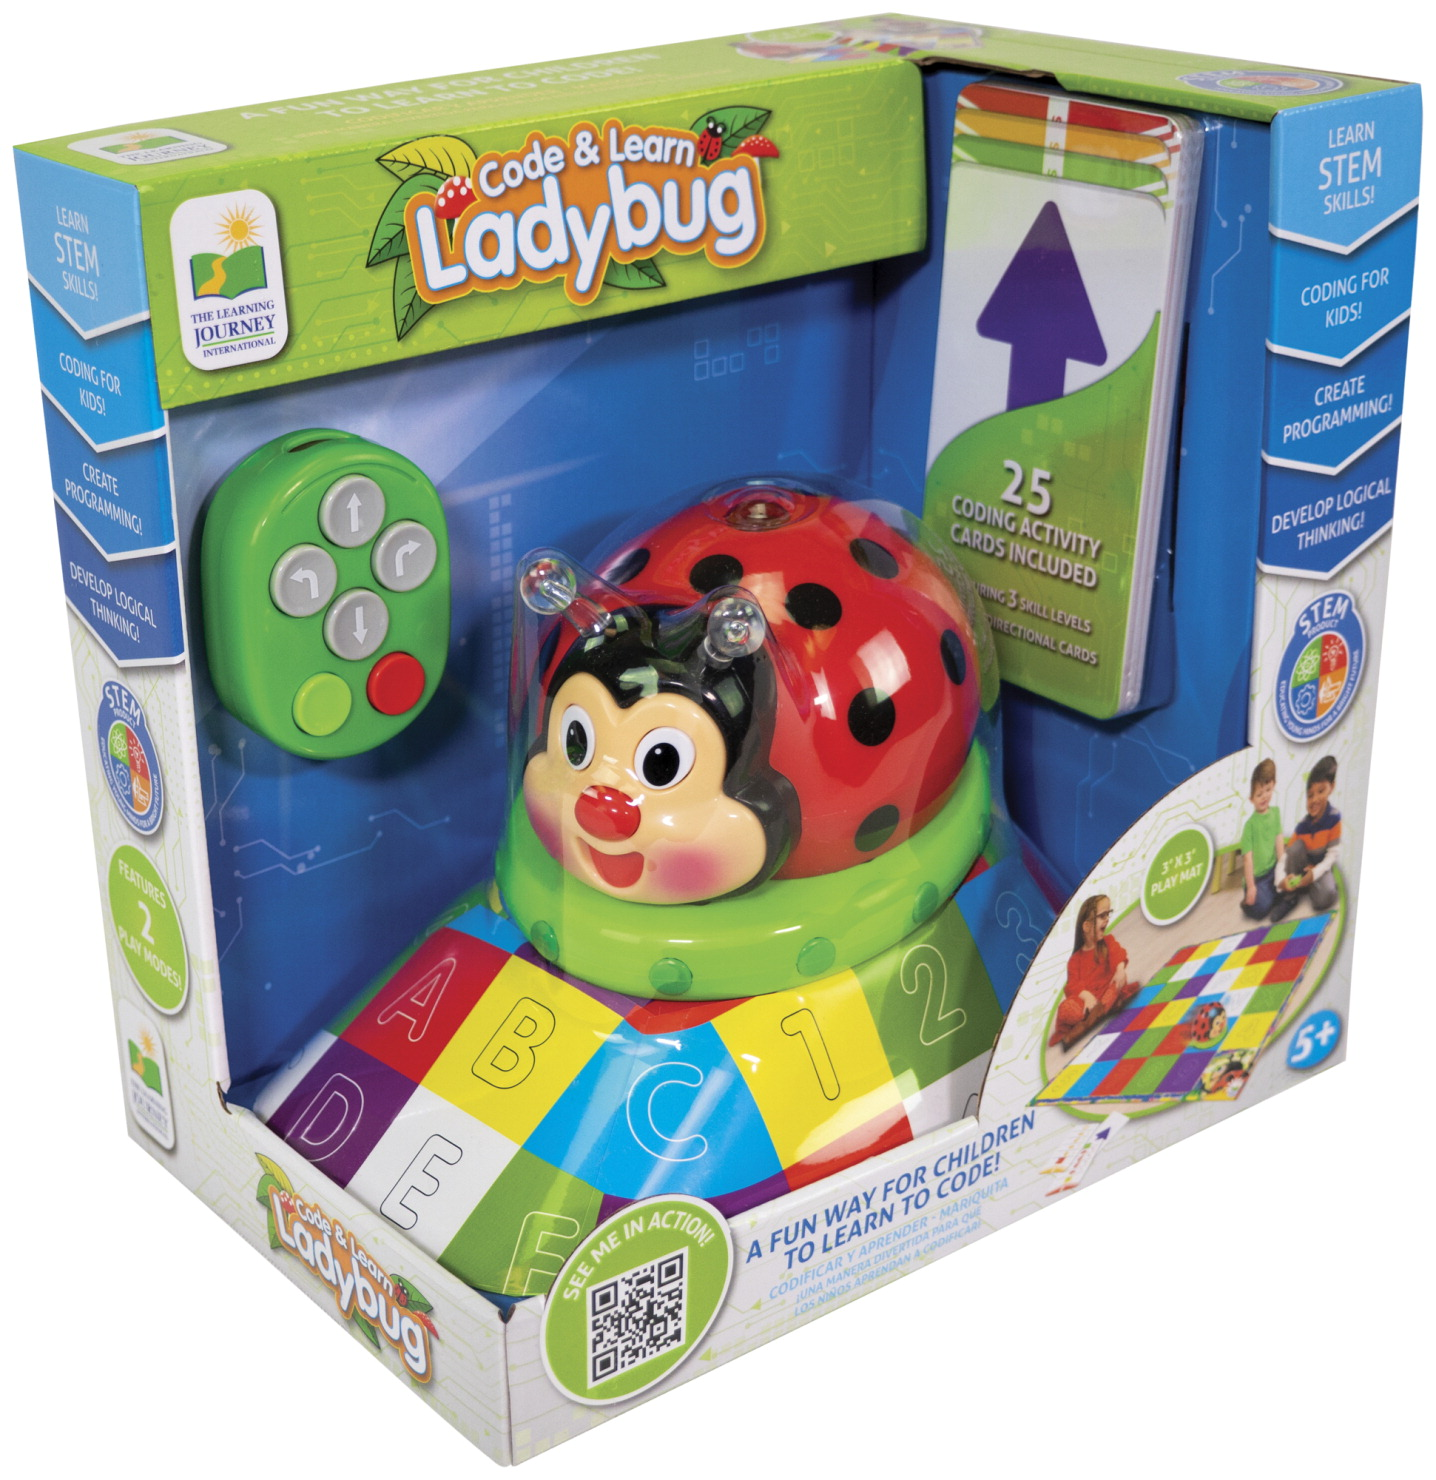 Learning Journey Code and Learn Ladybug